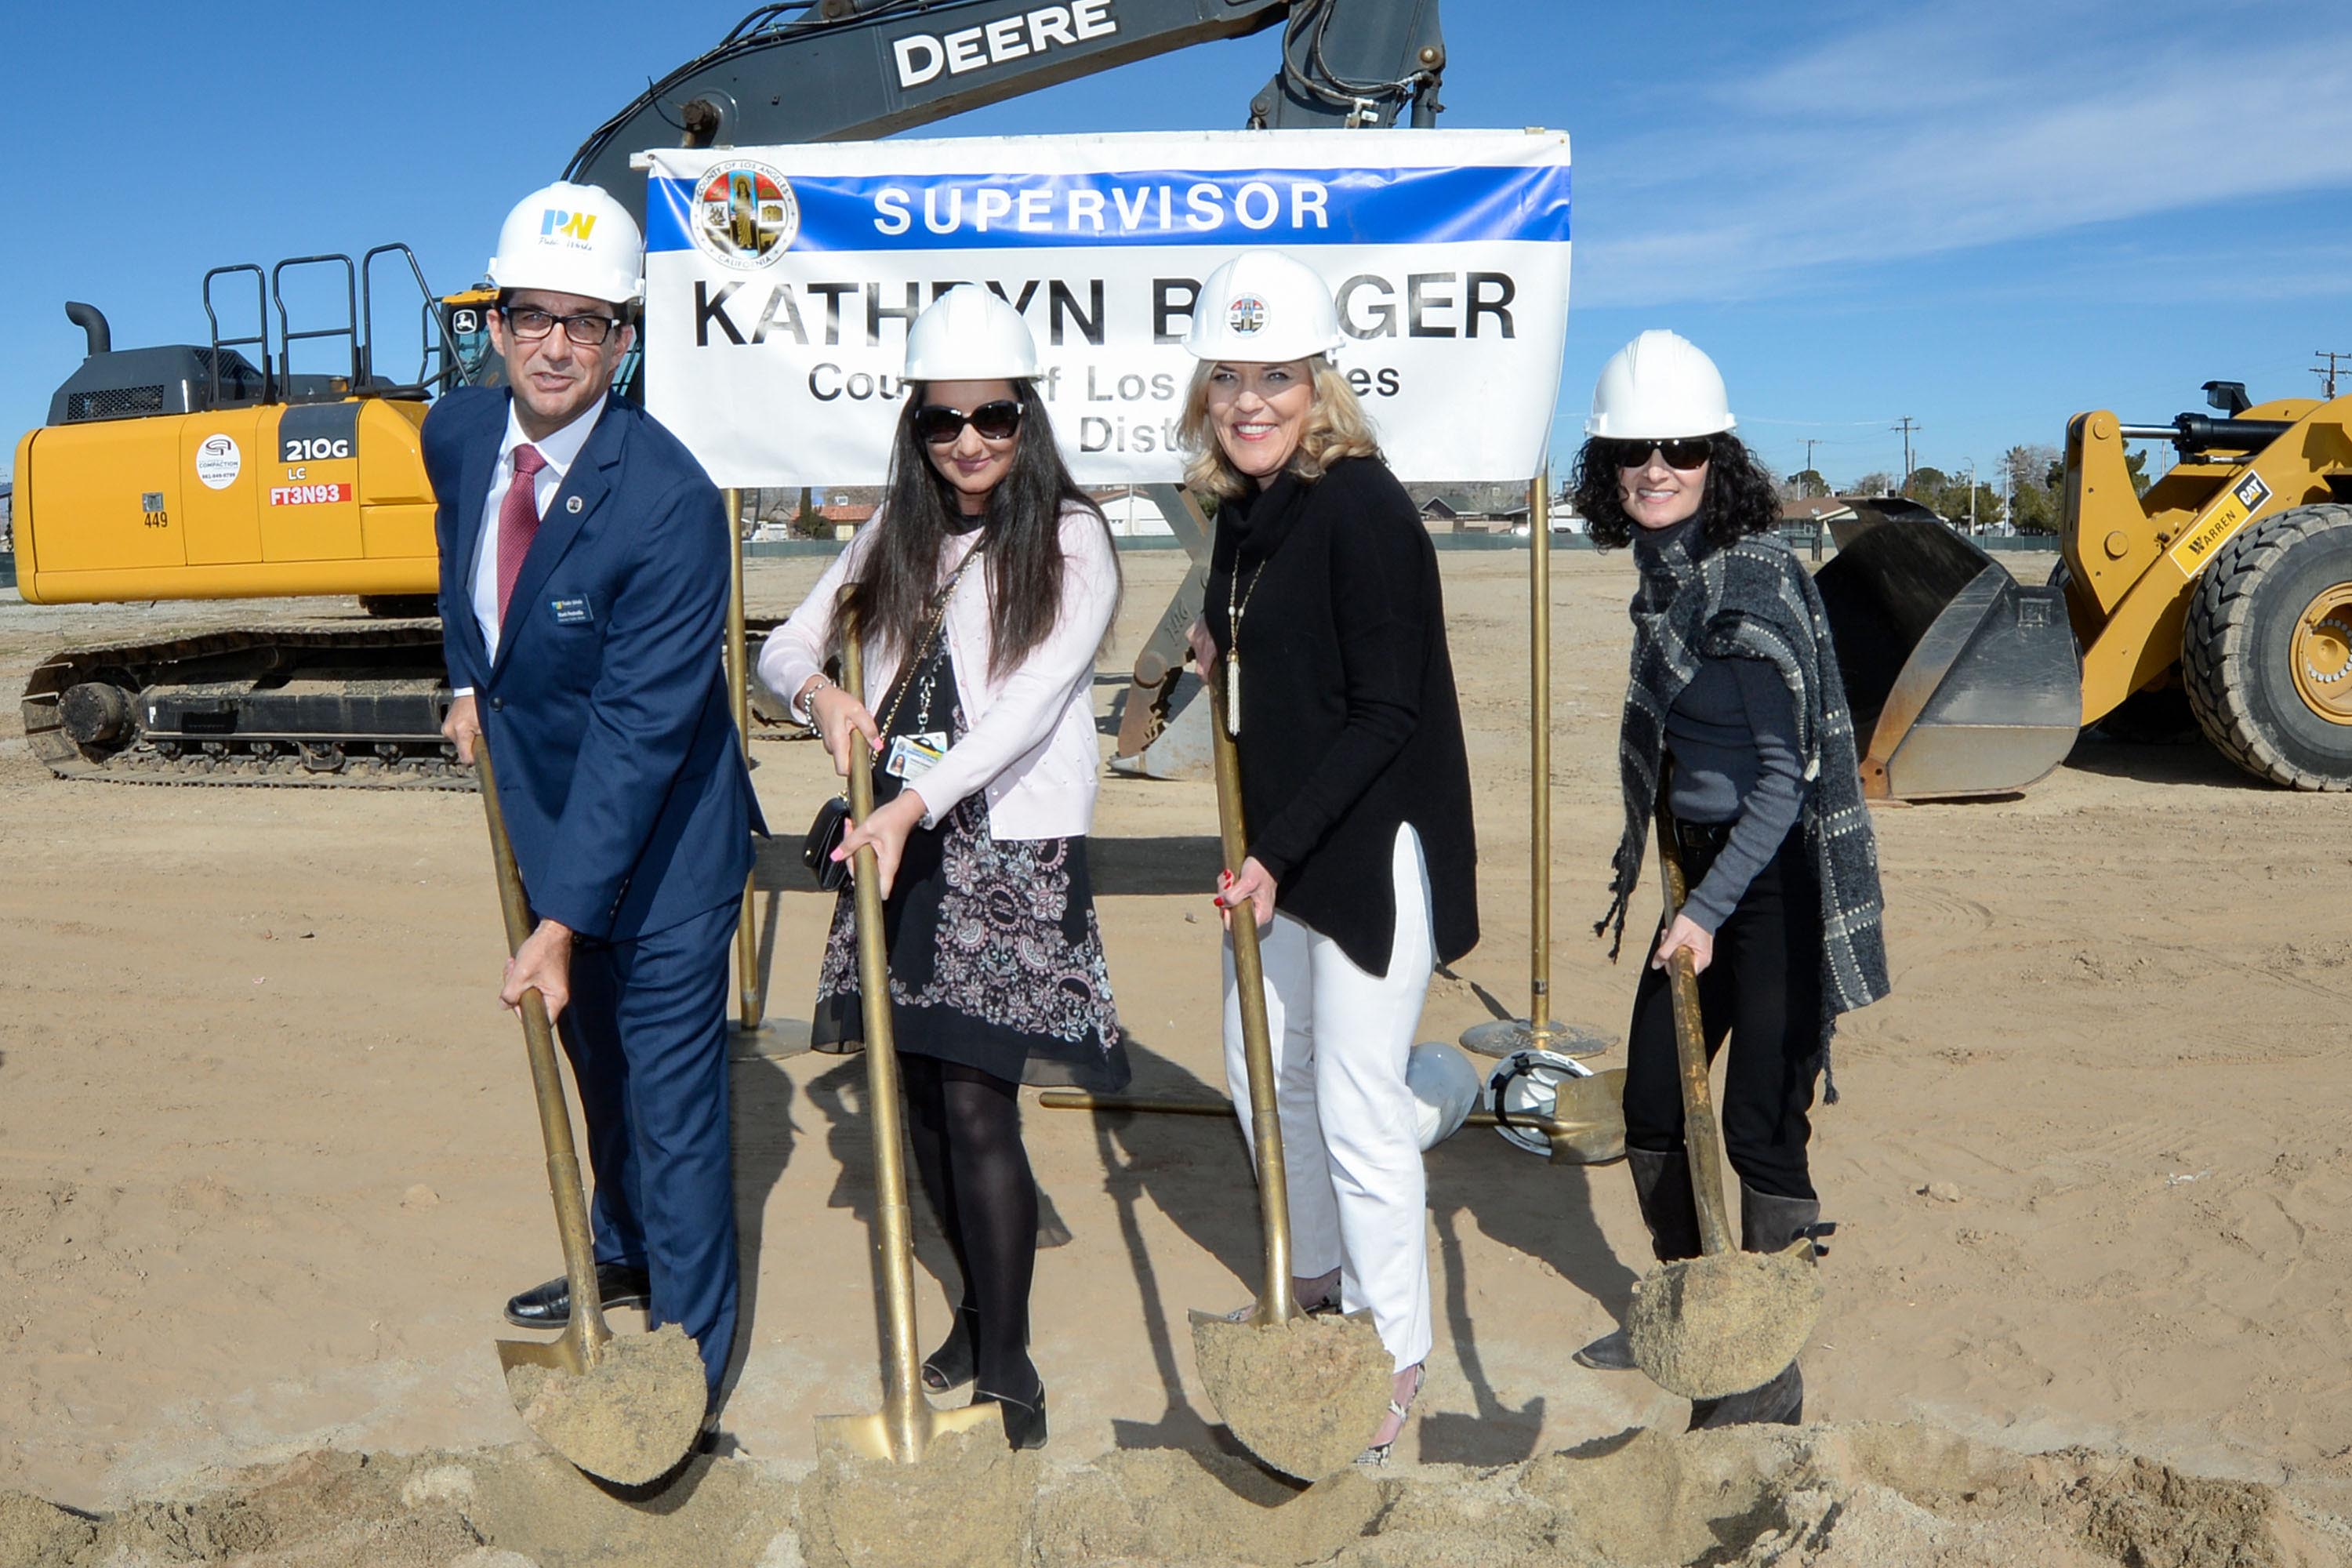 District 5 – Supervisor Kathryn Barger<br> <b>Jan. 27, 2020 – Mental Health Urgent Care Clinic groundbreaking in Lancaster. </b><br> <i>Photo by Martin Zamora / Board of Supervisors</i>